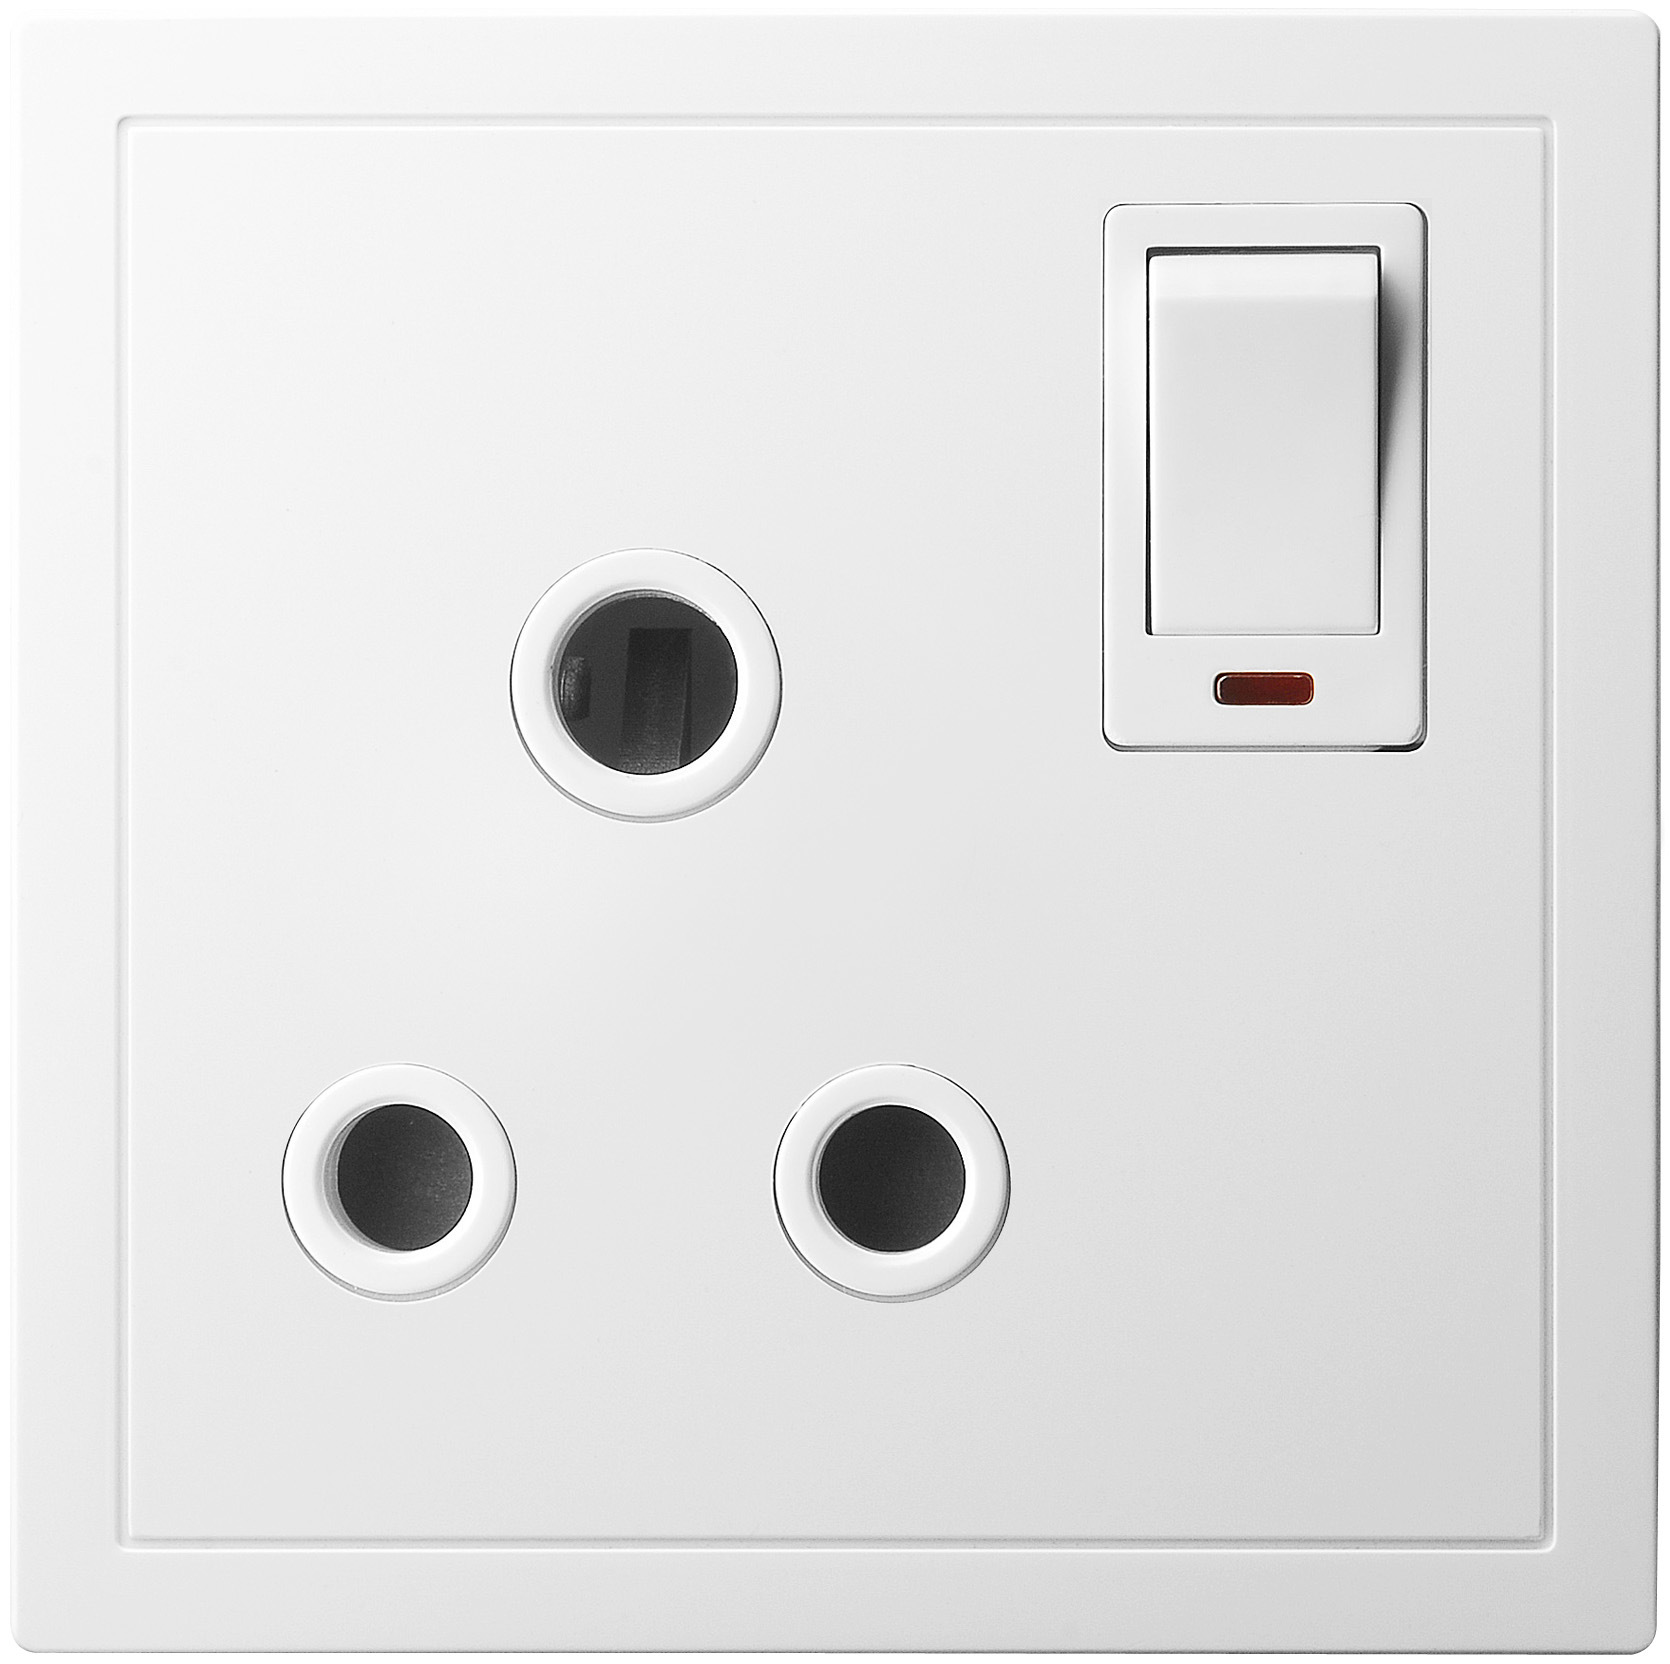 15A 1 Gang Switched Socket Outlet with Neon